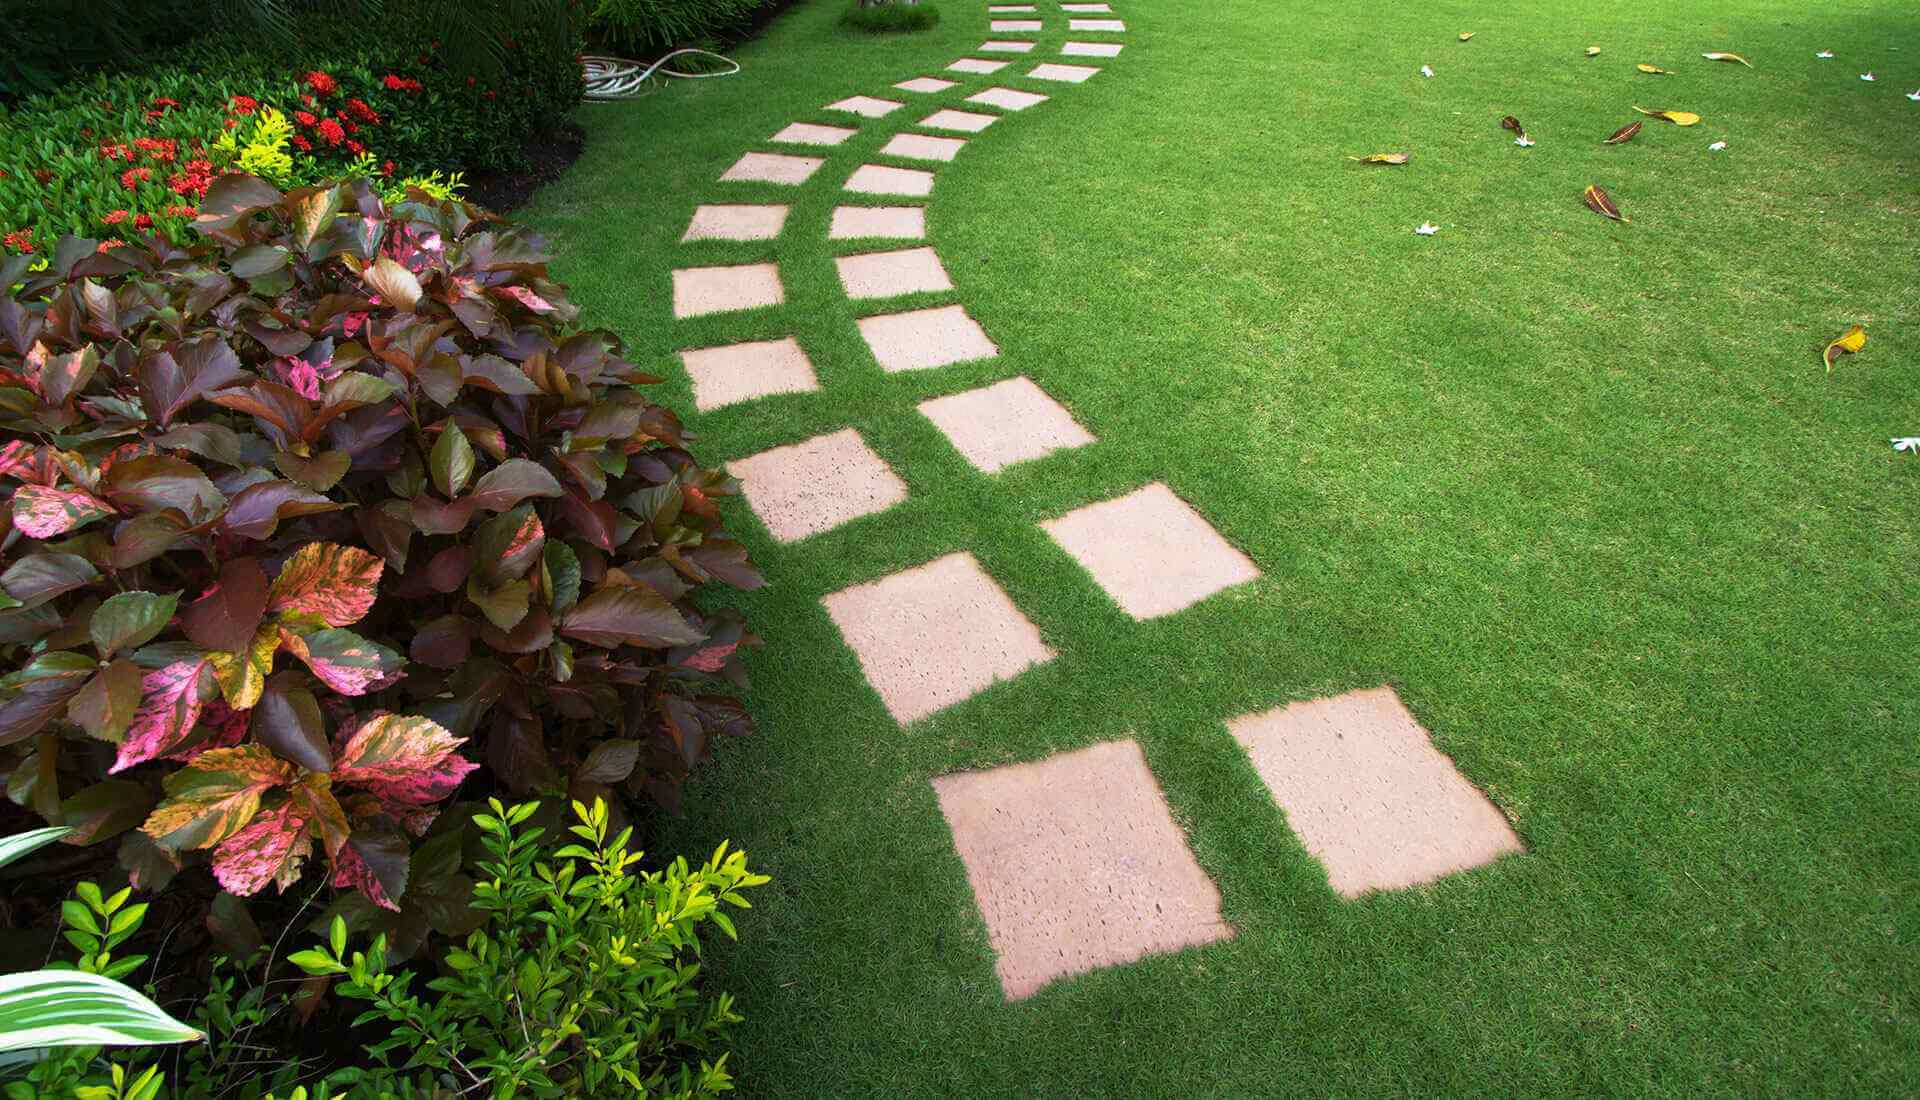 https://www.vitalgardens.com/wp-content/uploads/2020/04/Artificial-lawns.jpg